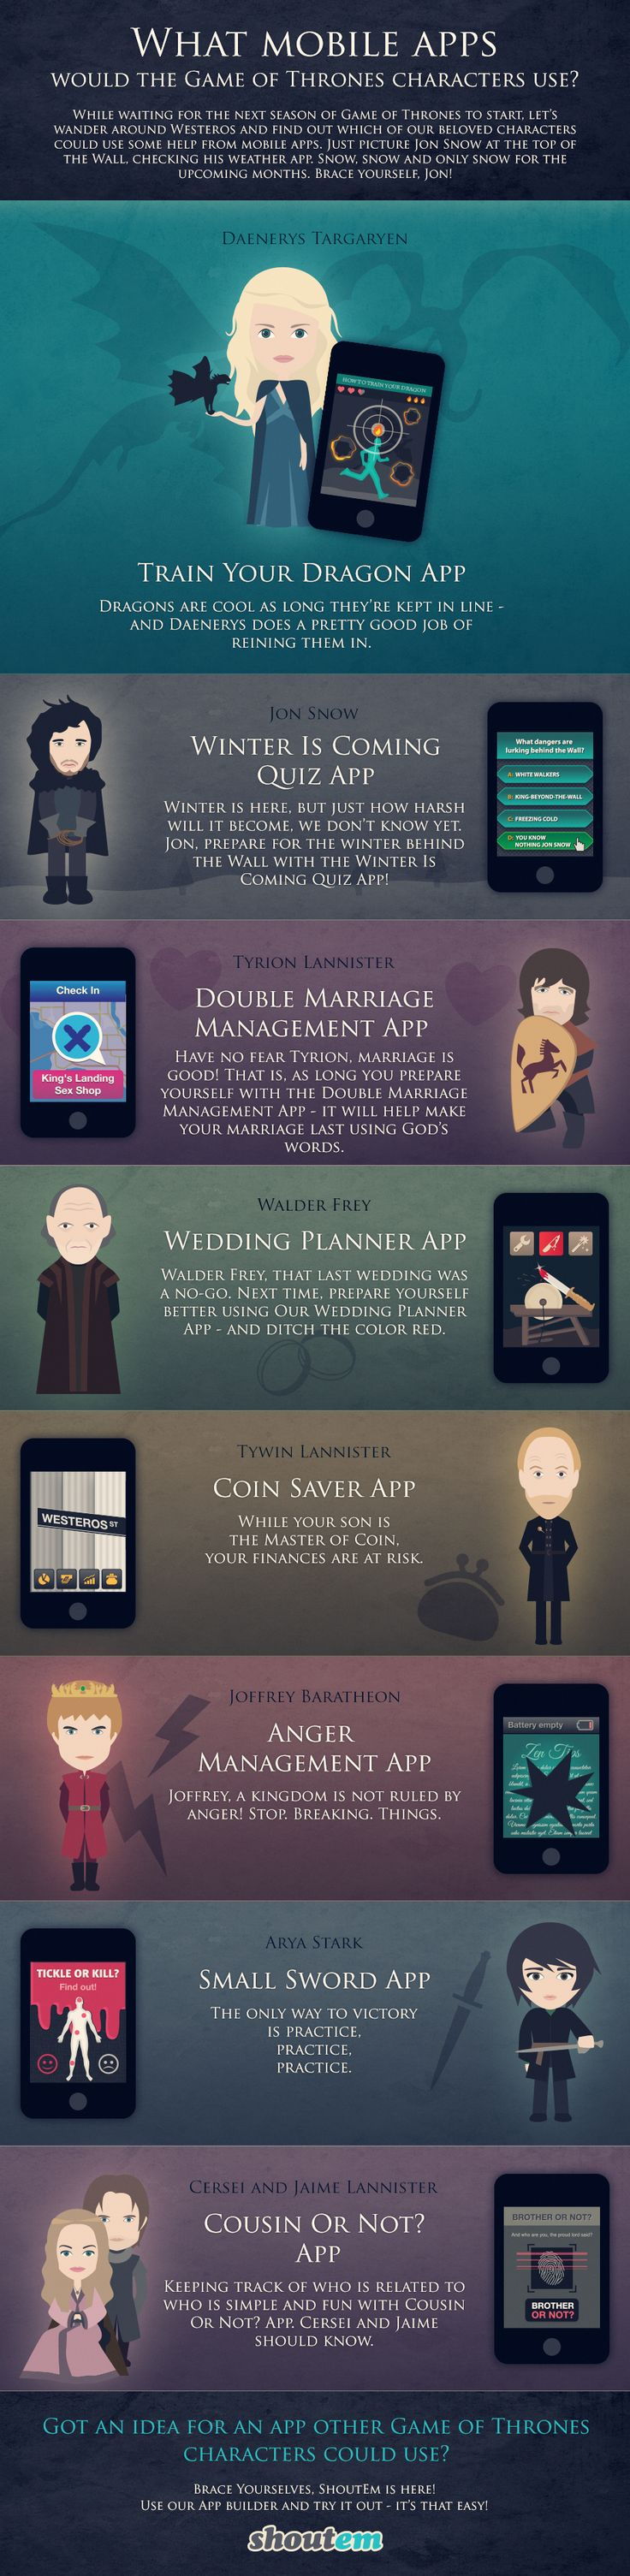 What Mobile Apps Would The Game Of Thrones Characters Use?  #Infographic #App #GameOfThrones #Entertainment